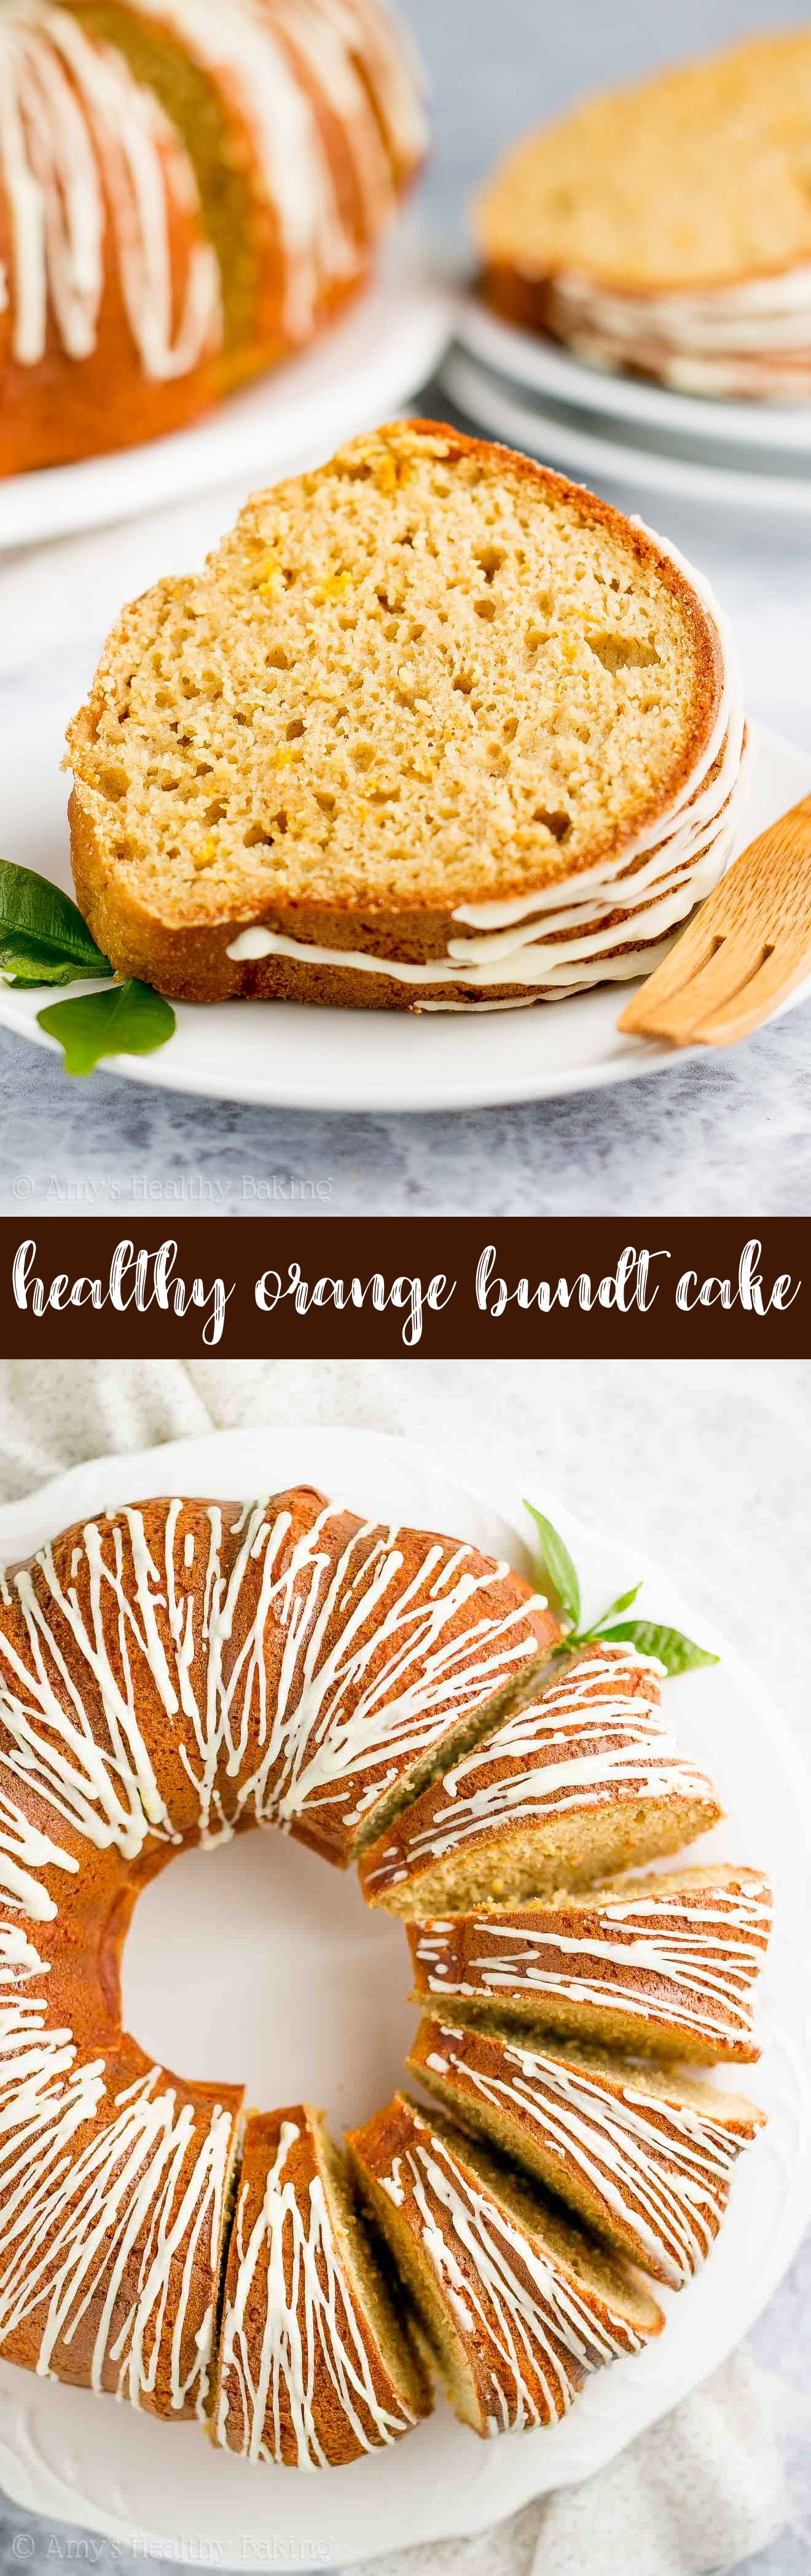 Healthy Orange Bundt Cake Recipe only 123 calories & made from scratch It s moist tender & full of flavor I wasn t a fan of orange flavored cakes